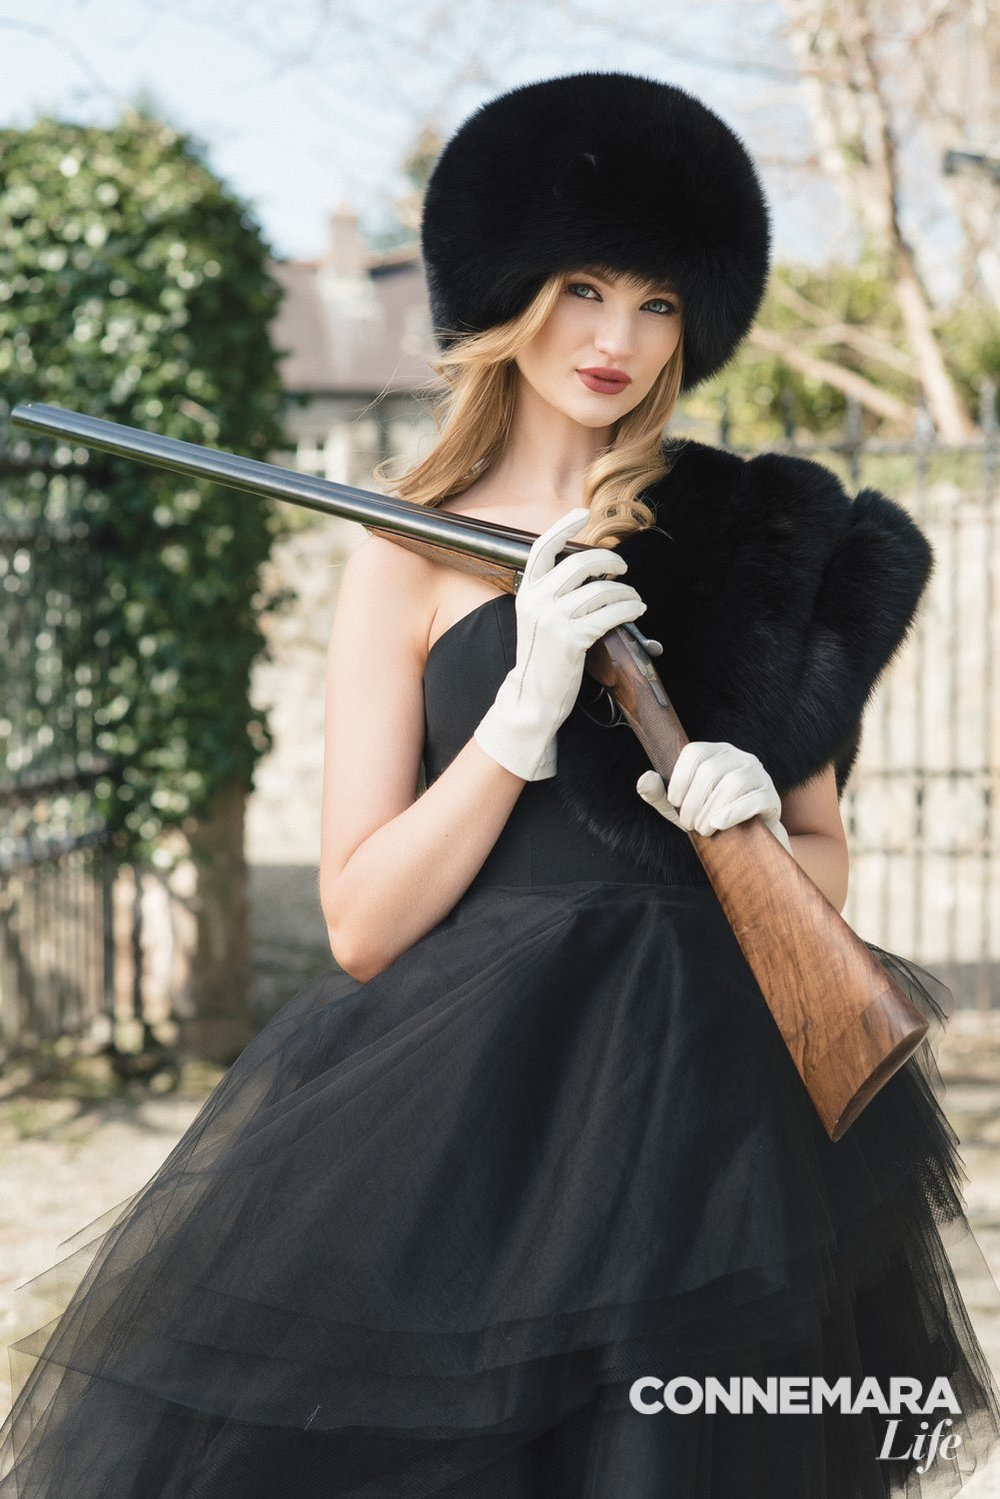 Christian Siriano gown, Resort 2015 collection; gloves, fox fur stole, and bubble hat in black by Surell Accessories